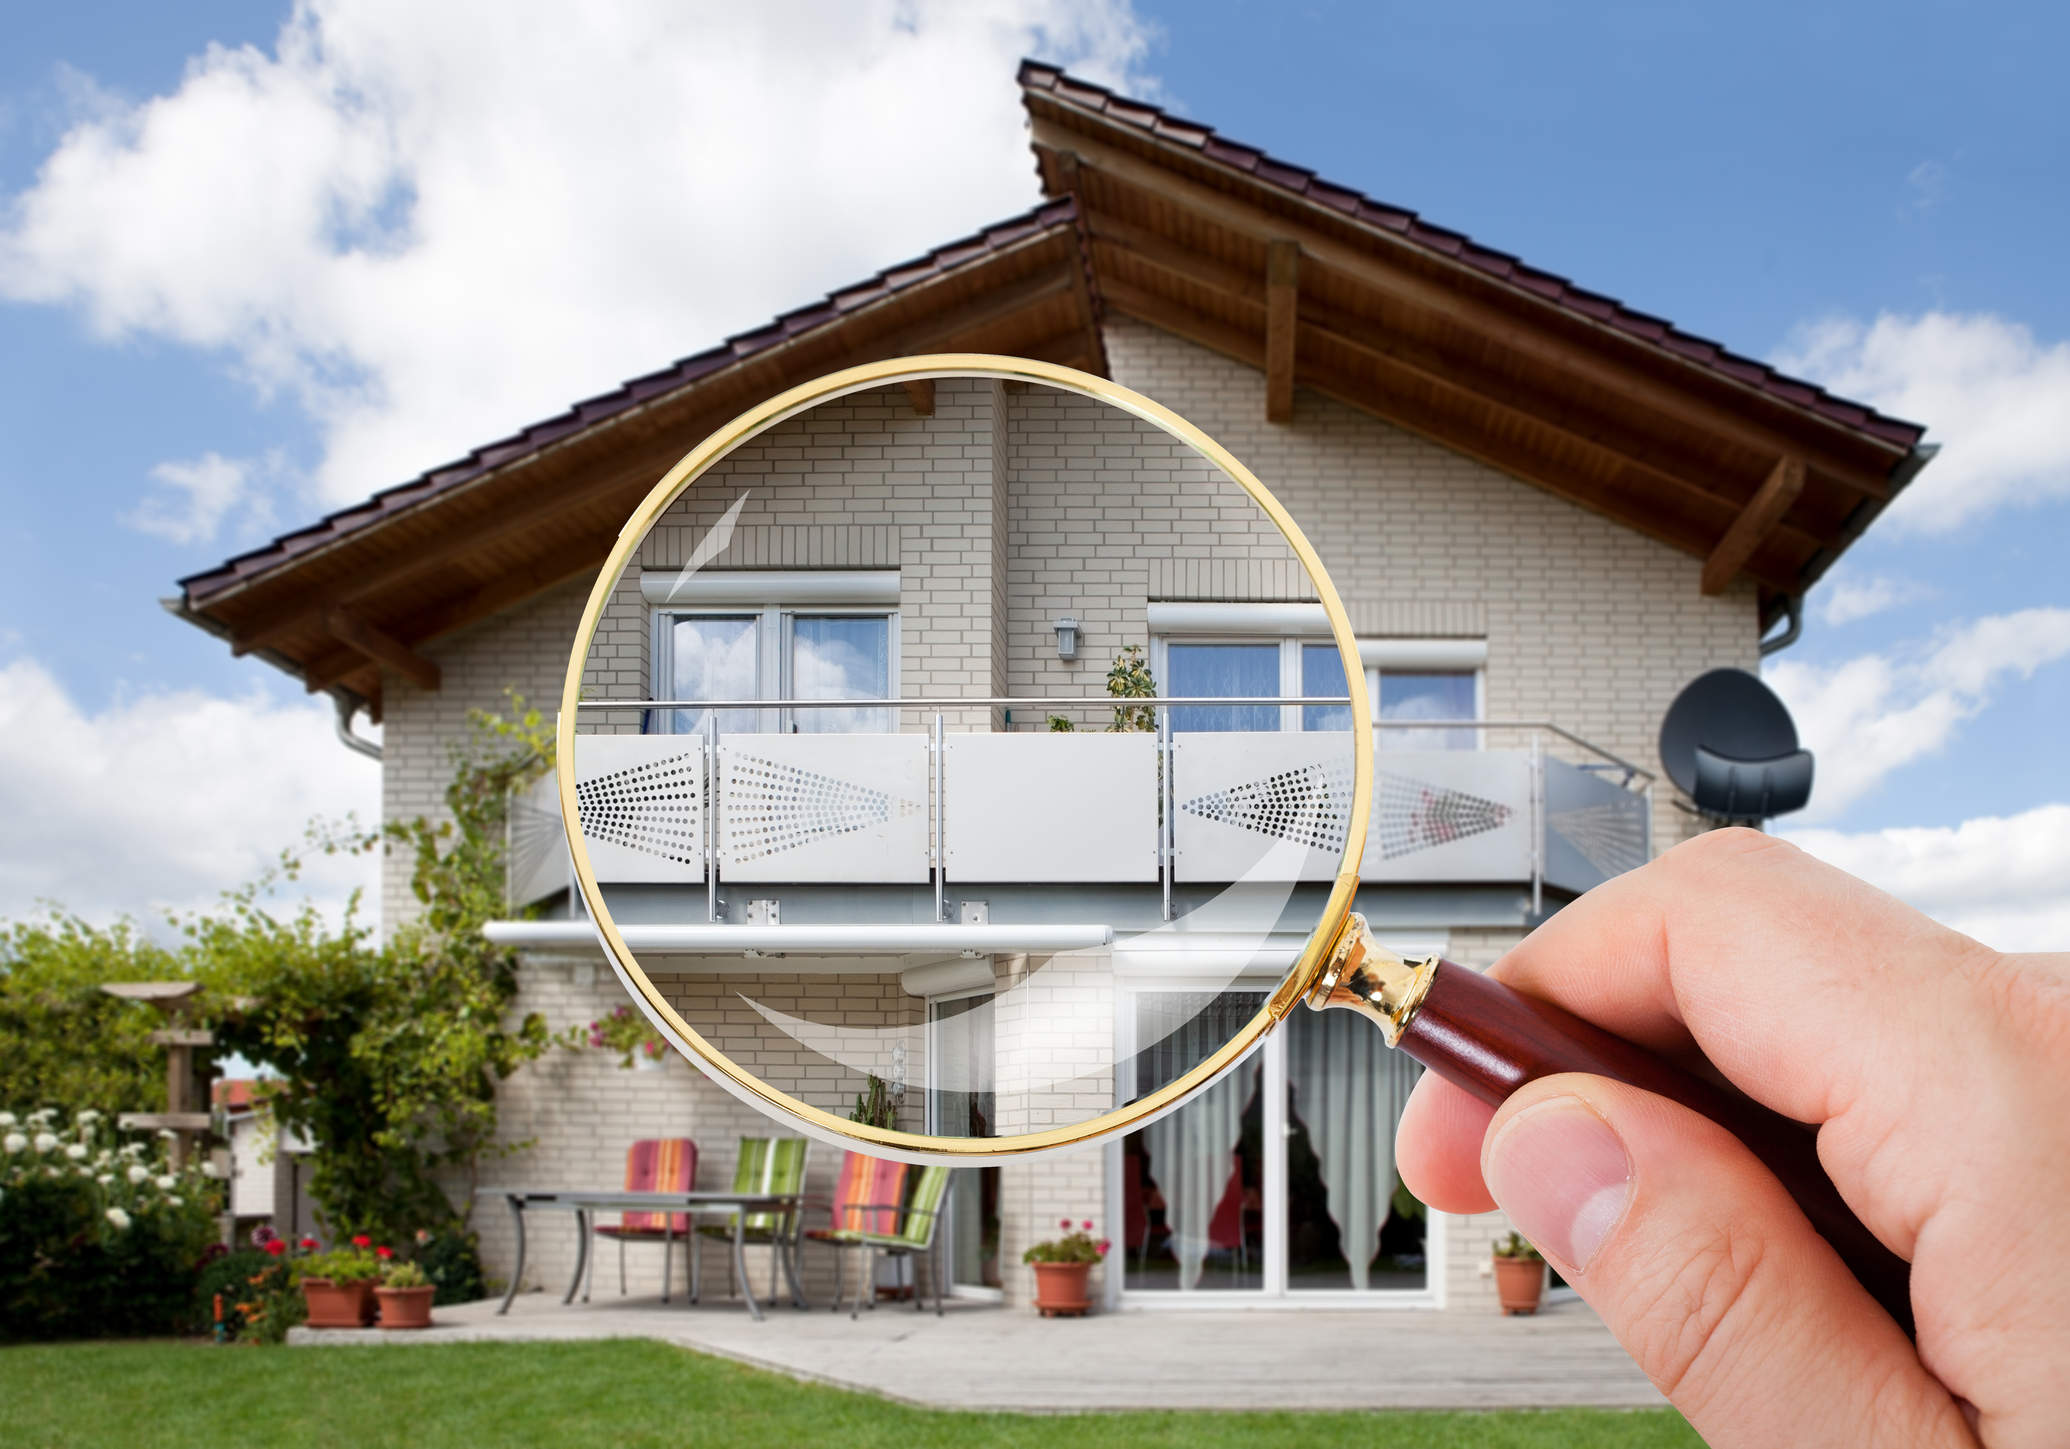 We provide thorough Home Inspections